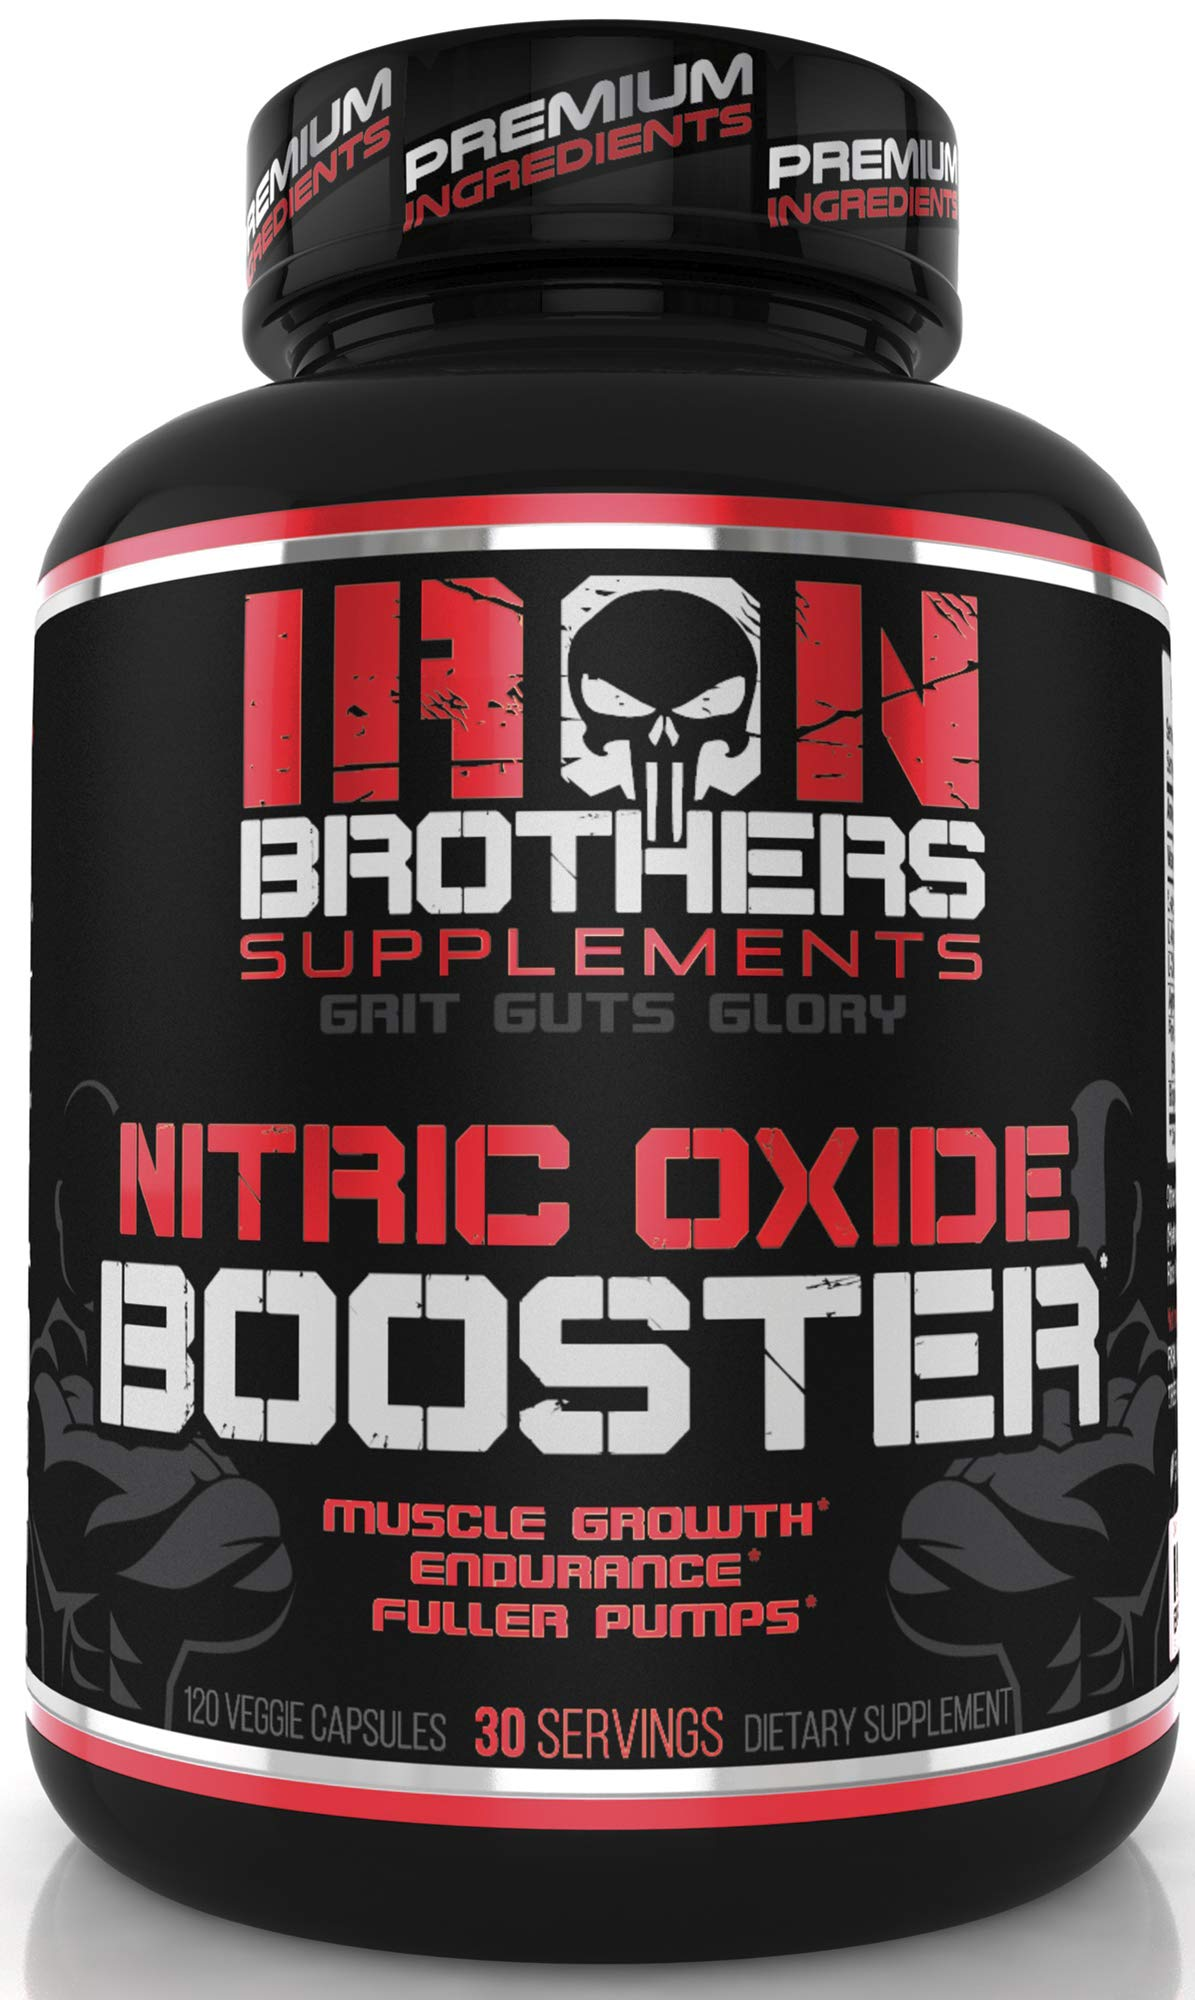 Nitric Oxide Supplements Booster Pre Workout with Fermented L-Arginine Increase Muscle Pumps Blood Flow Energy Strength Endurance Vascularity - 120 Veggie Capsules L-Citrulline by Iron Brothers Supplements